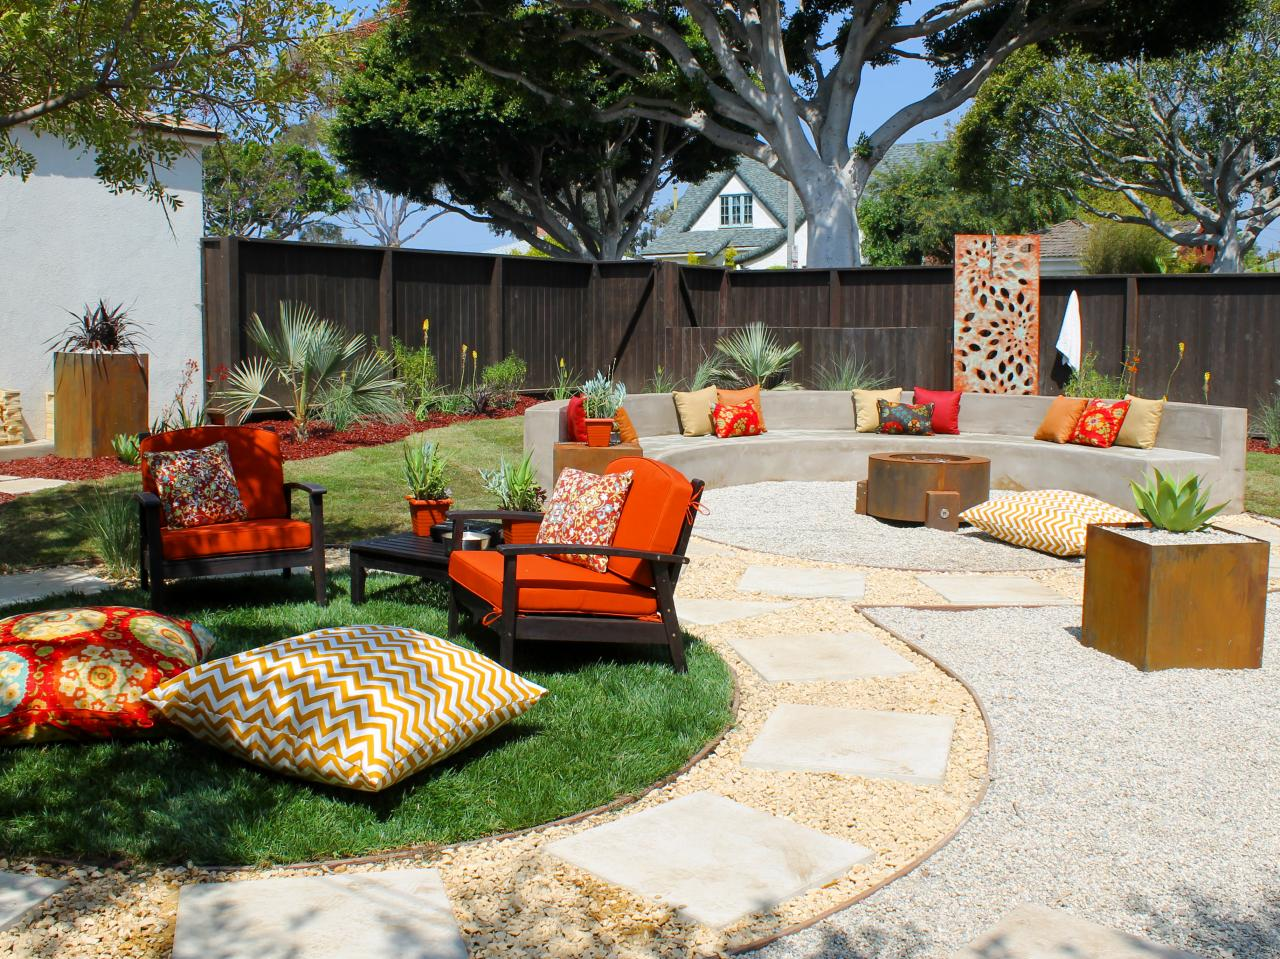 DIY backyard fire pit: Home-made Ideas to Build Outdoor ... on Backyard Fire Pit Ideas Diy id=27321